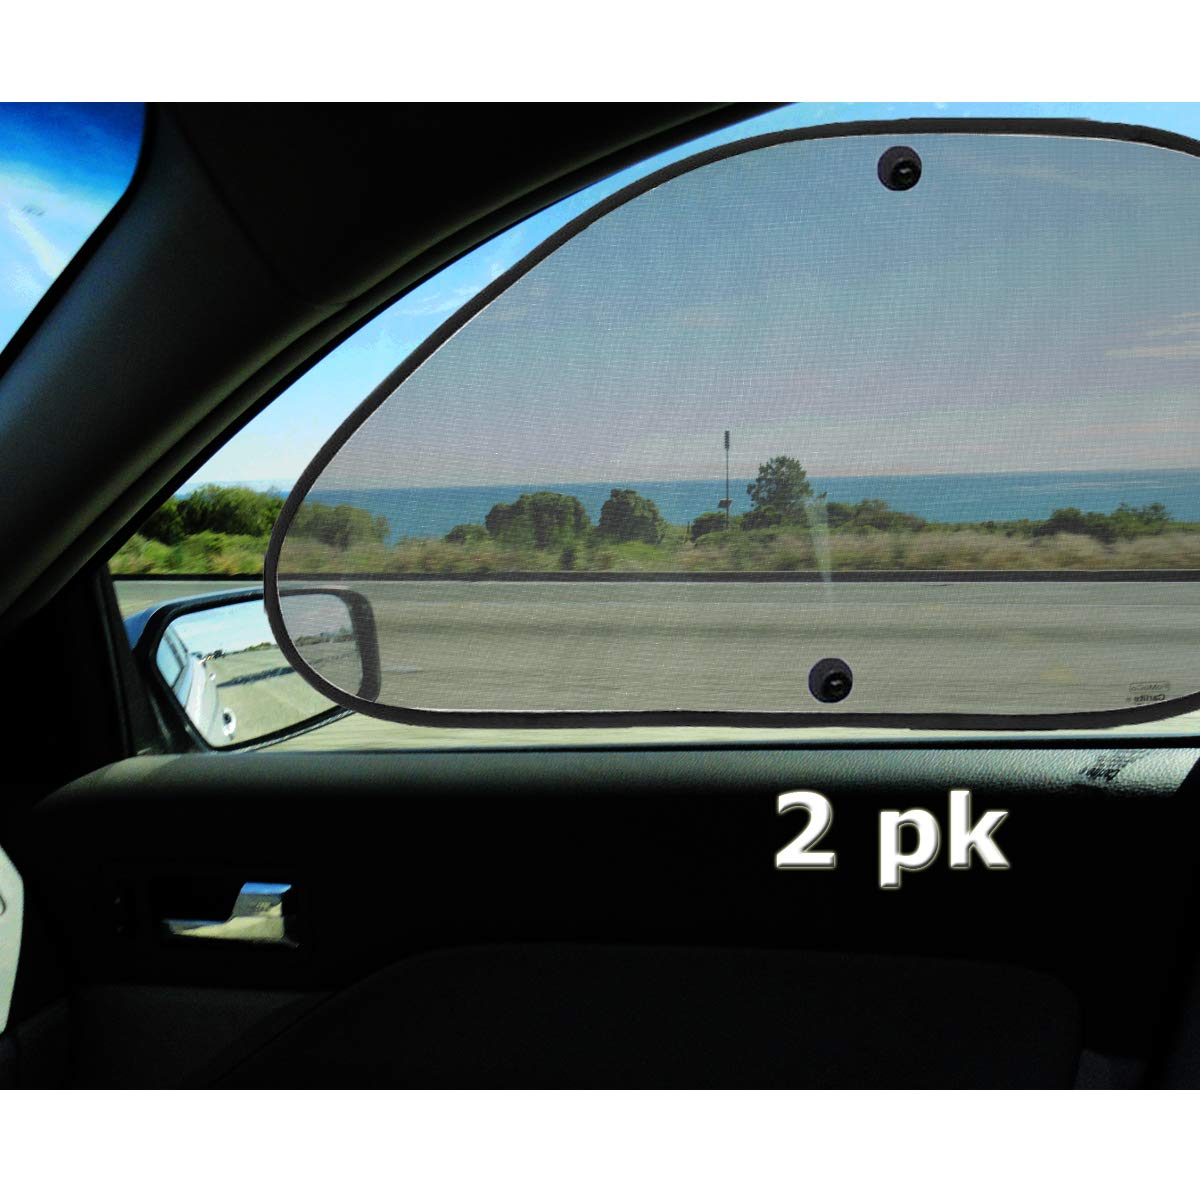 VaygWay Baby Window Sun Shade- Car Accessories Side Sun Visor- Kids Pets  Seat 2 Pk- Sun Glare UV